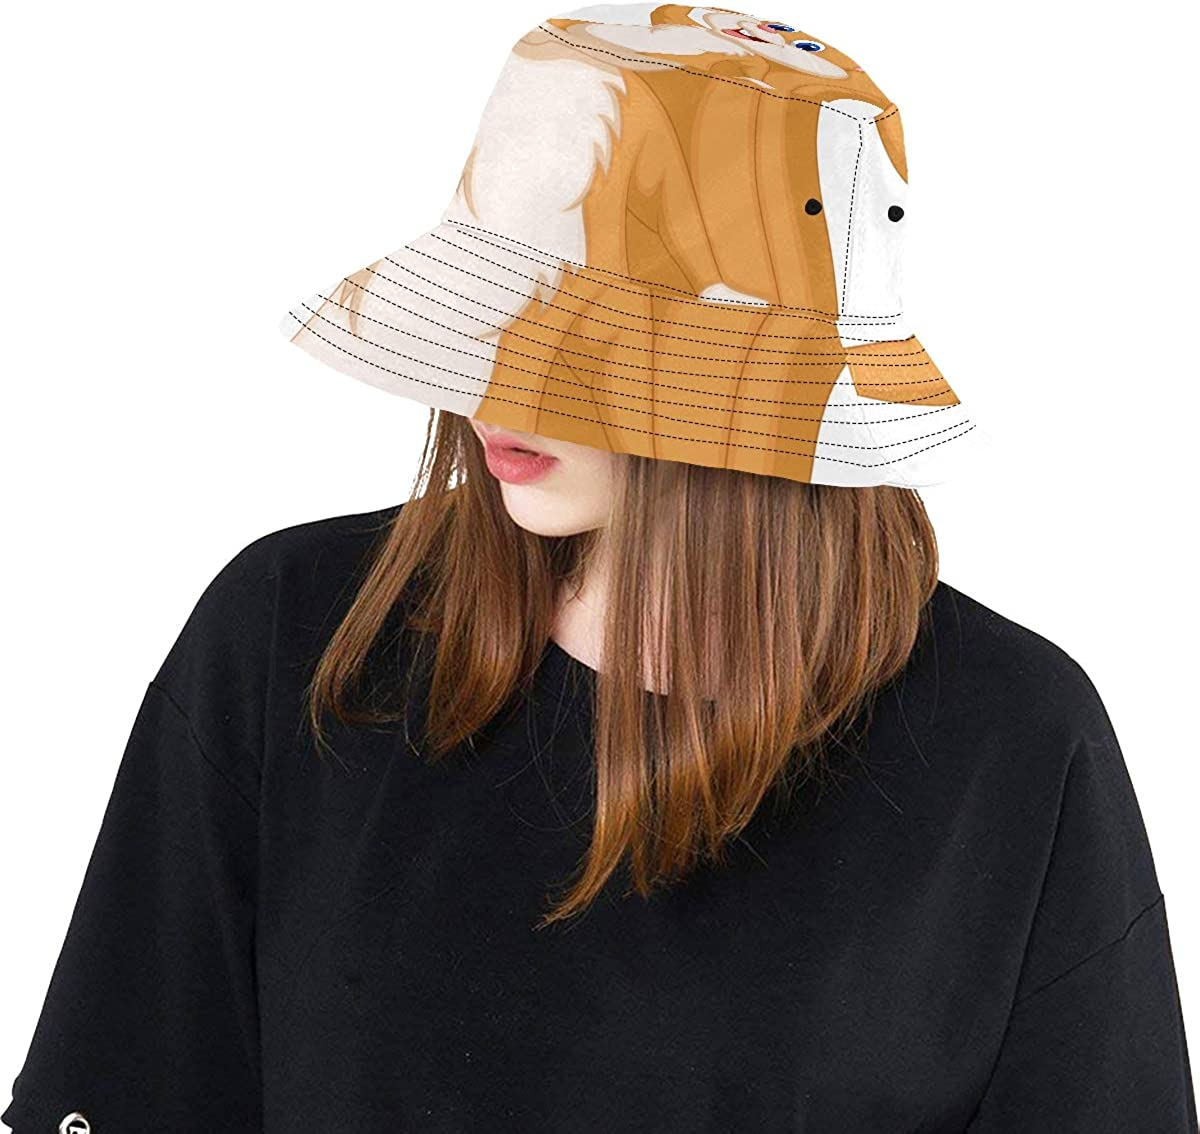 GESDY Wide Brim Beach Fishing Hat Outdoor Breathable Foldable Sun Protection Bucket Hats Cap